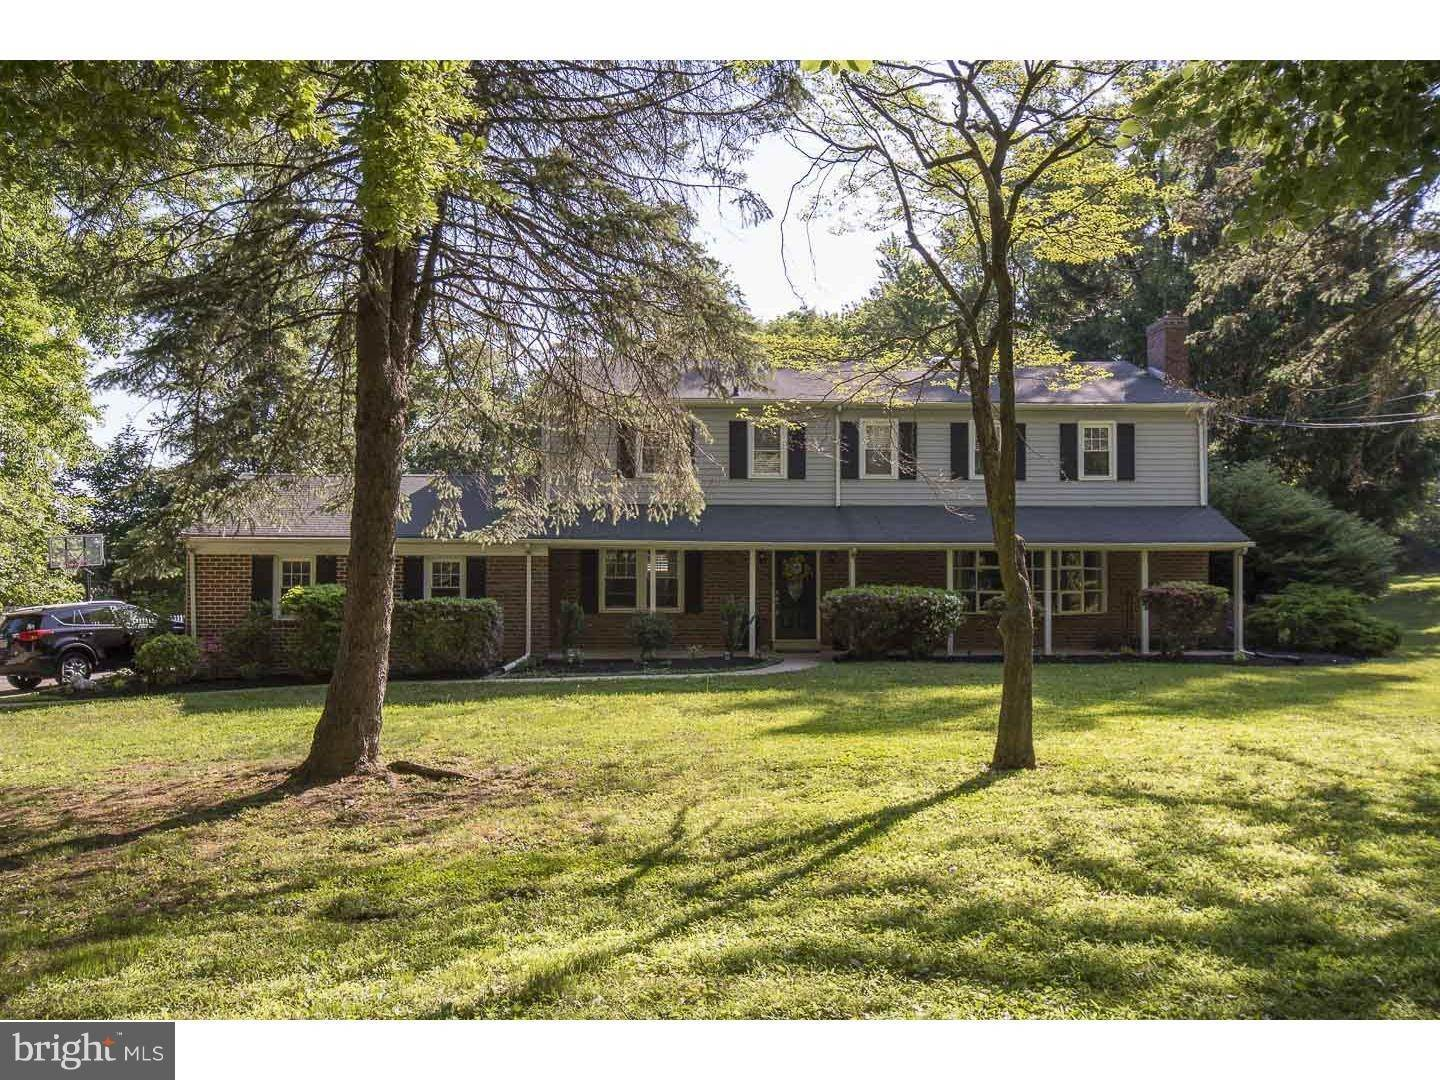 Detached House for Sale at 2005 COUNTY LINE Road Villanova, Pennsylvania 19085 United States